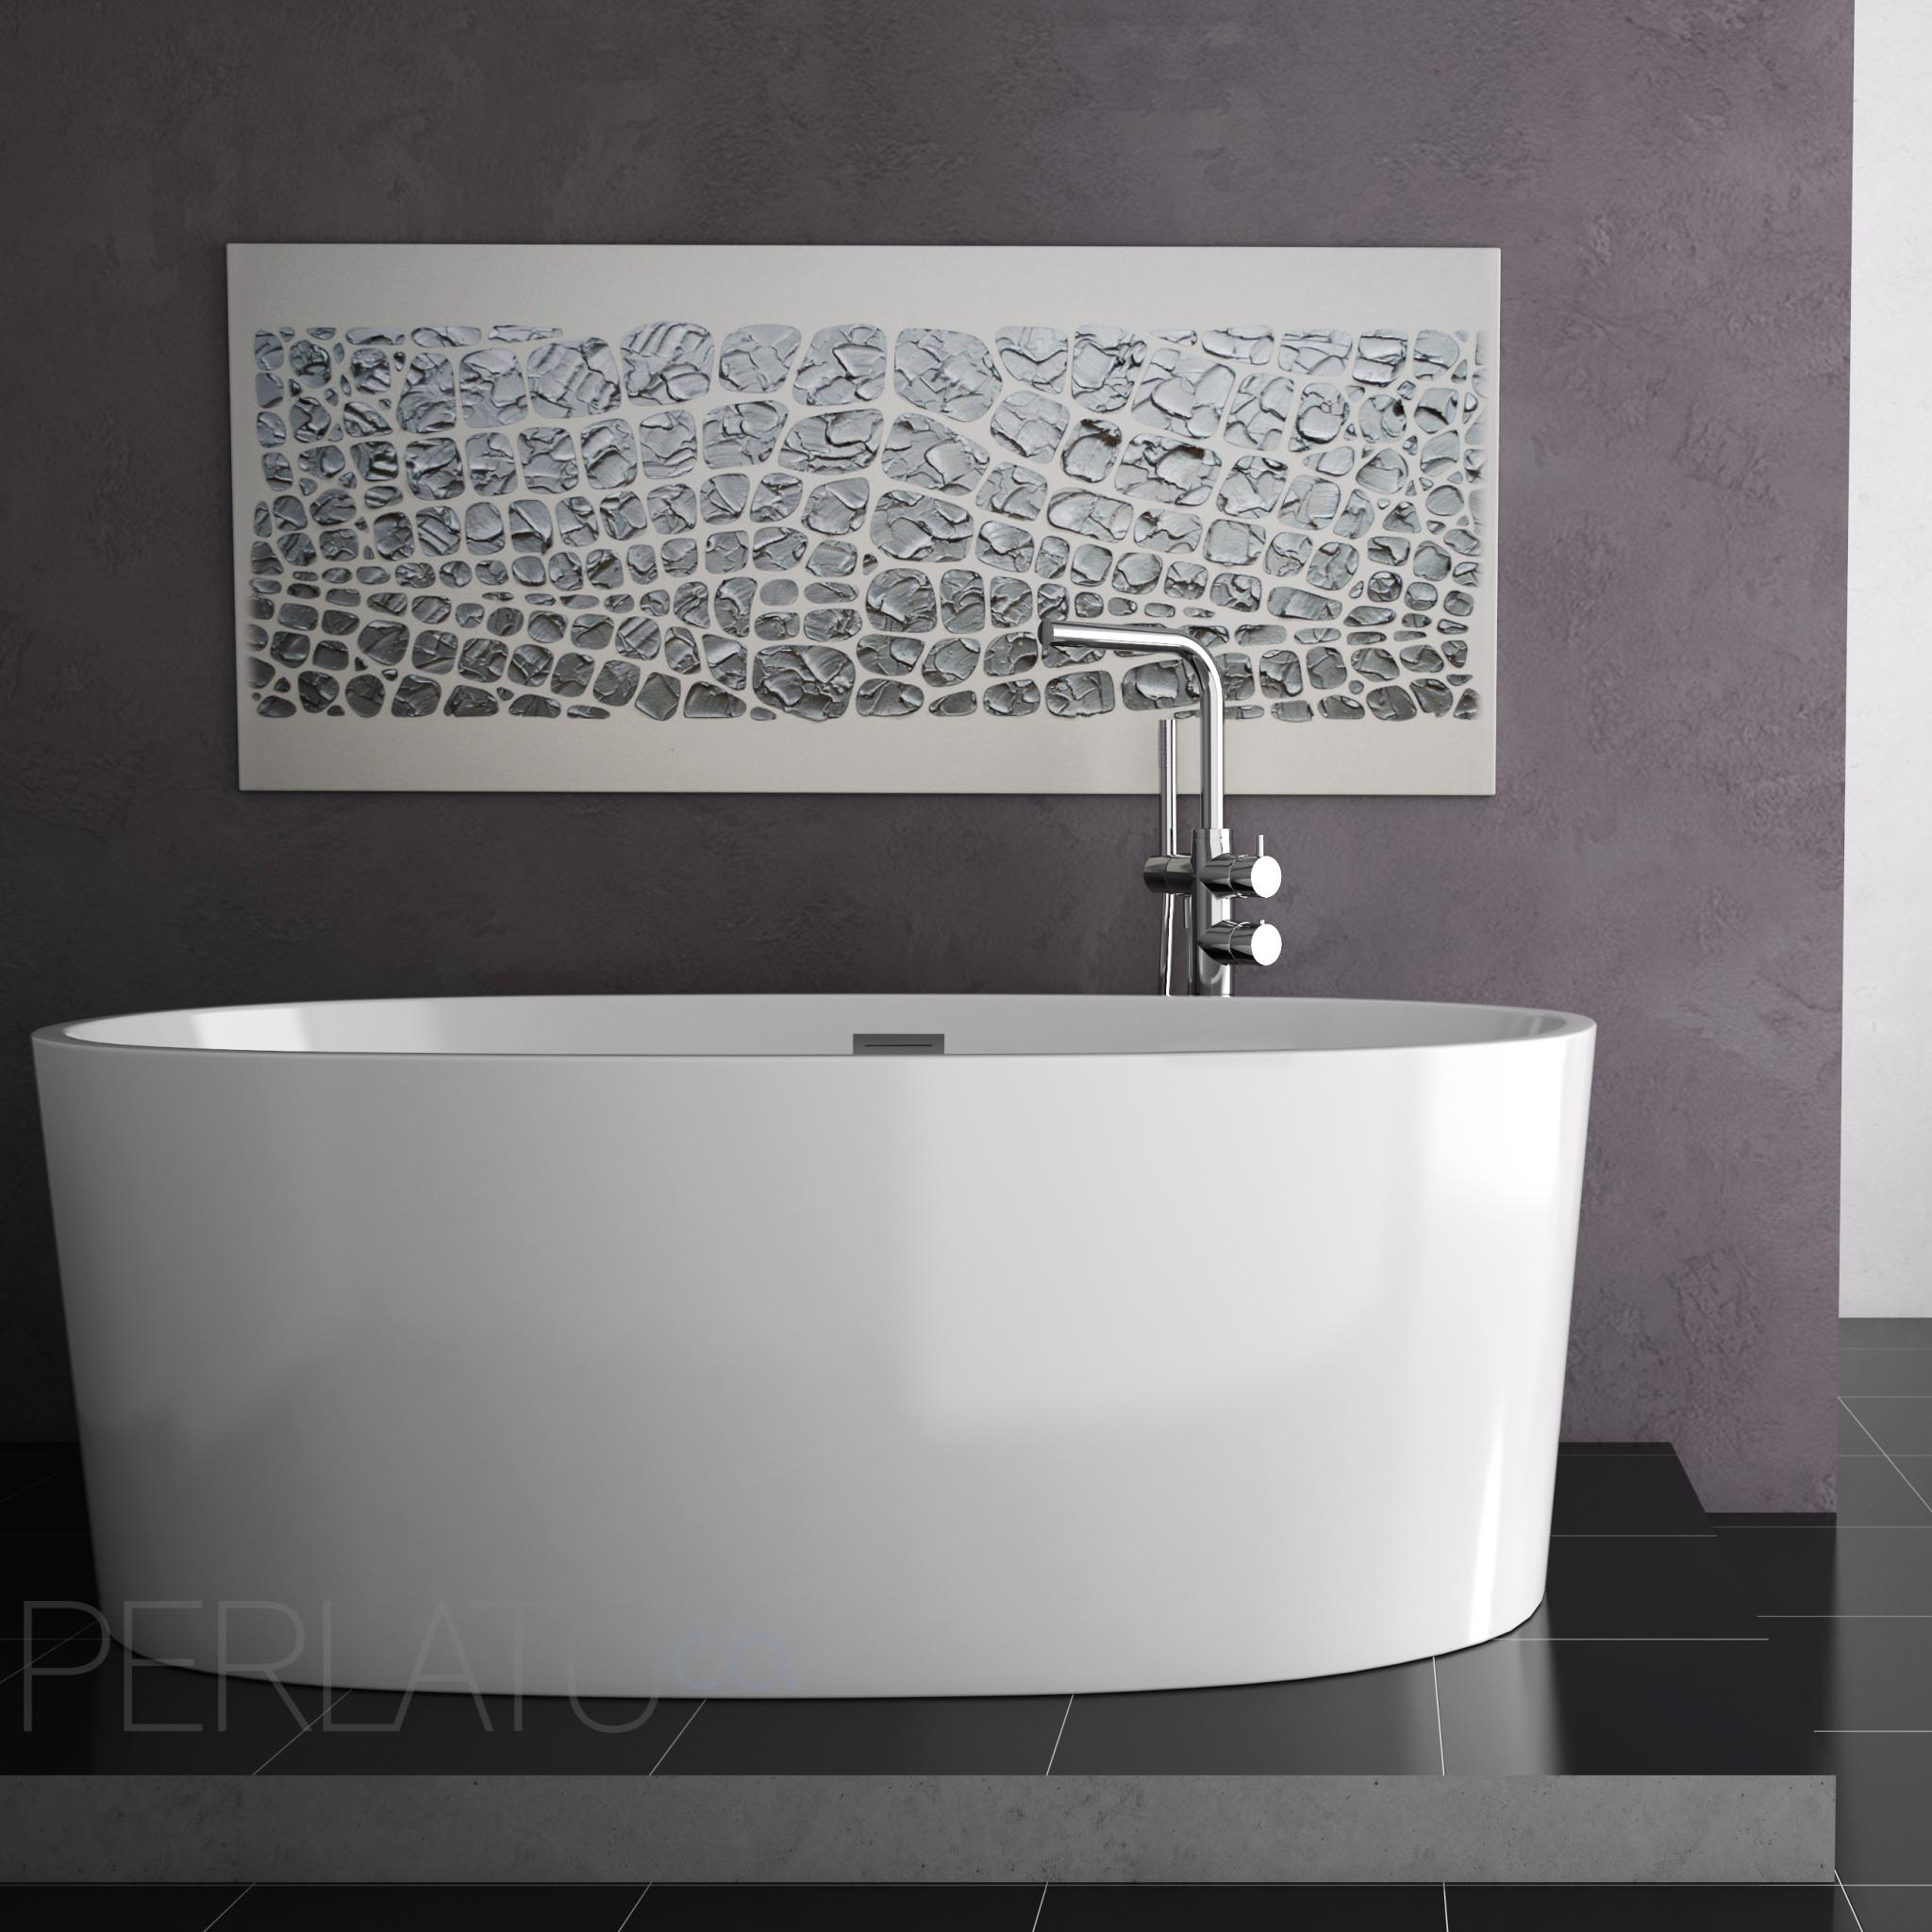 Pretty & Practical: Soaker Tubs by Perlato - Abode